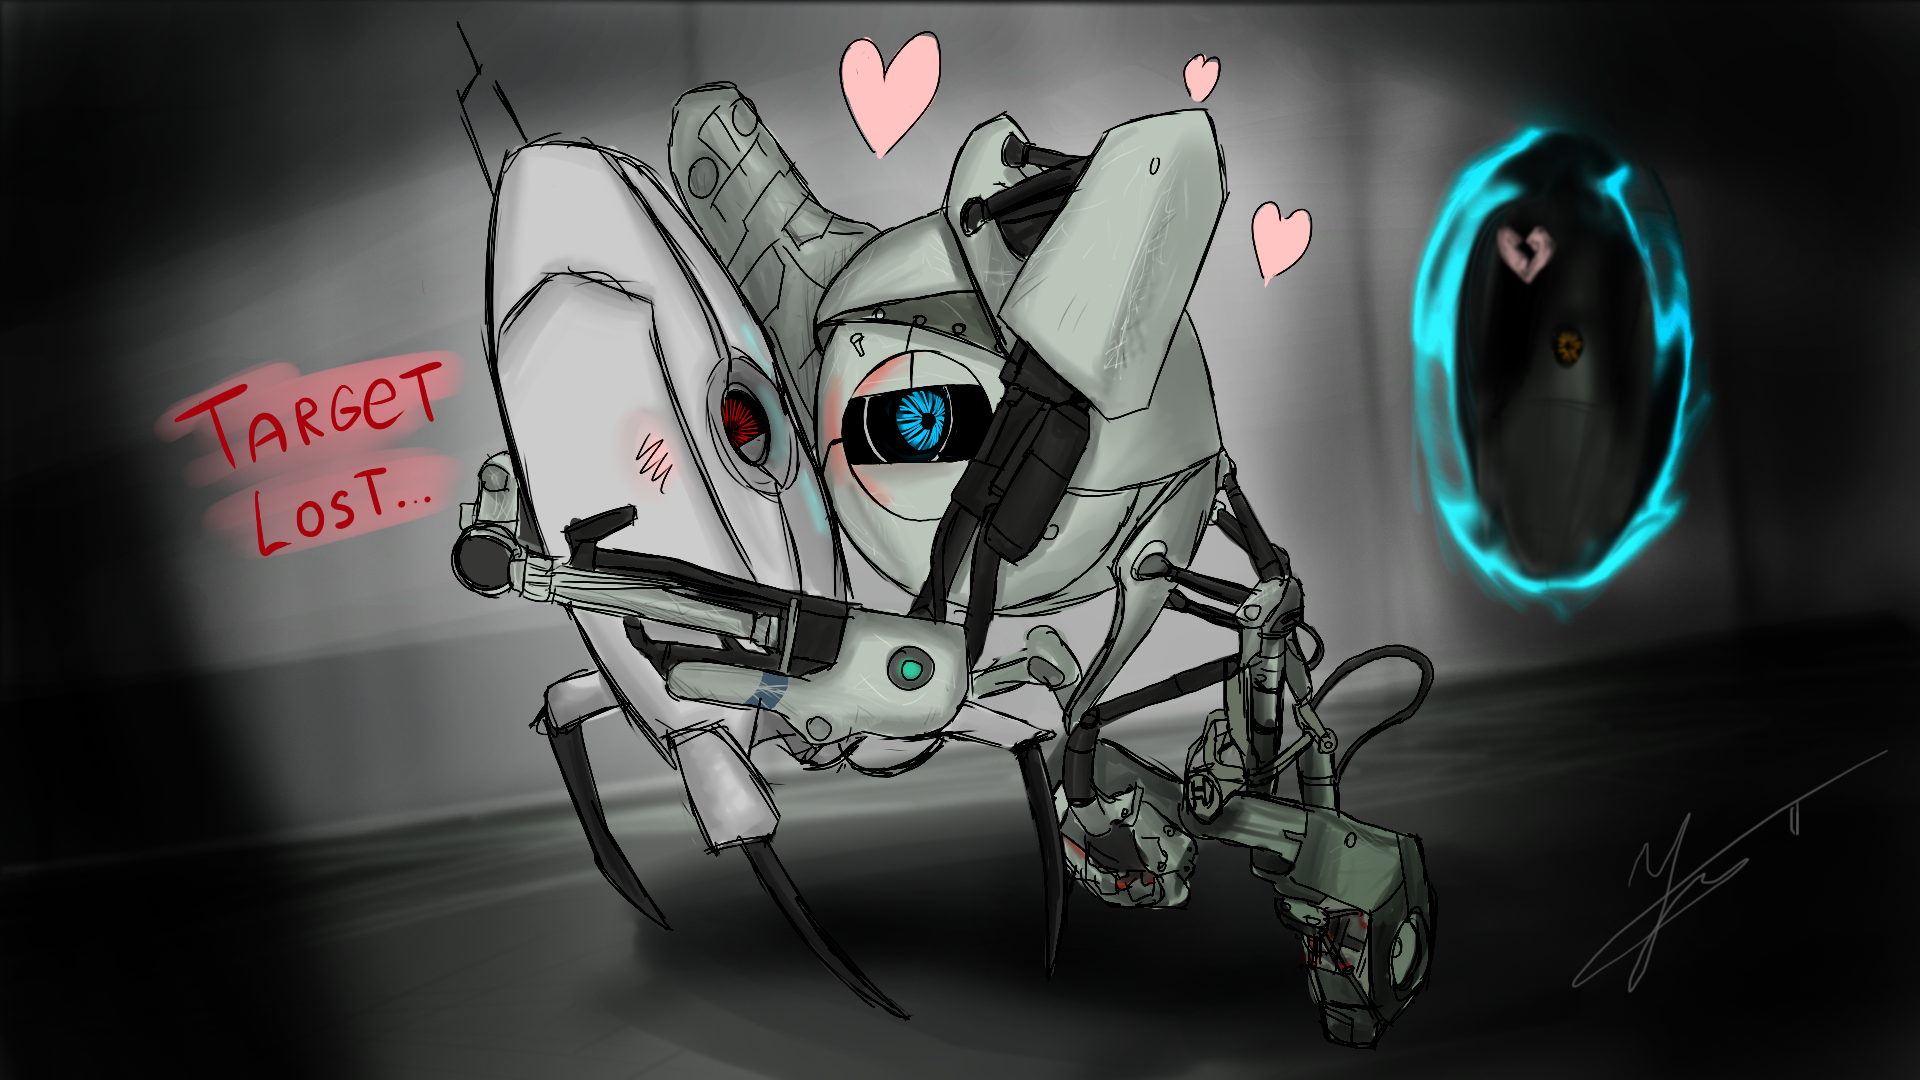 Portal 2 Robot Chell Glados Turret Girls 3D Graphics Games